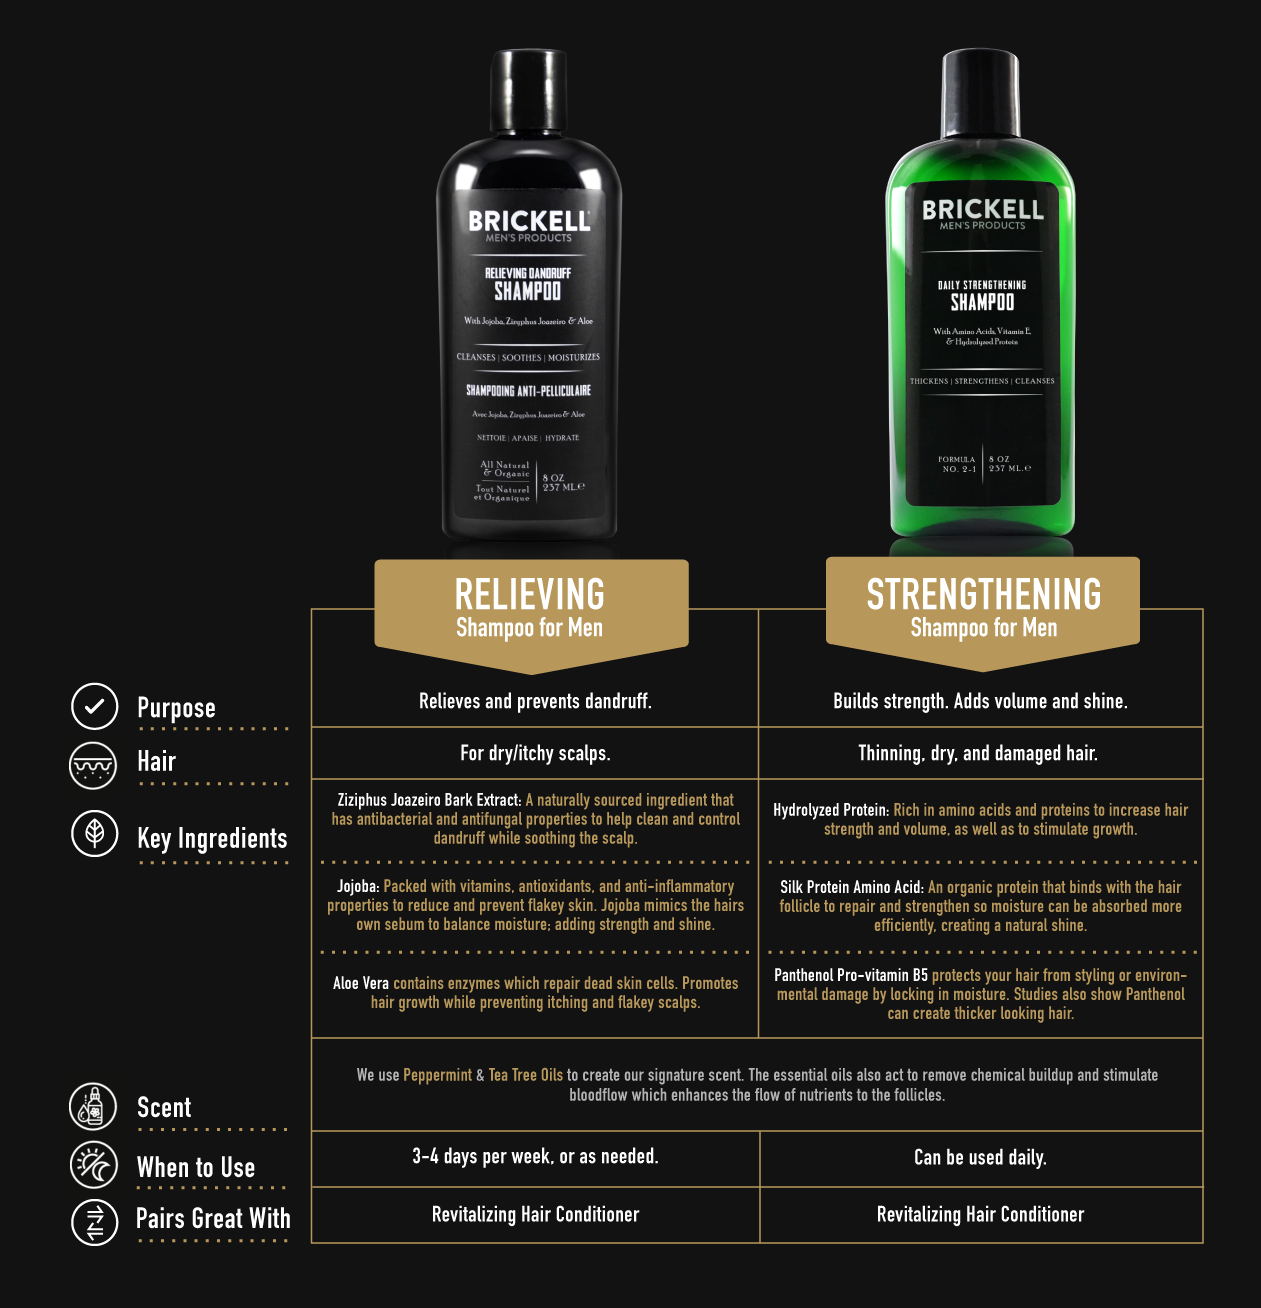 Brickell Men's Products Relieving Dandruff Shampoo, Compare Shampoo, Shampoo Comparisons, Dandruff Shampoo, Flakey Scalp, Flaky Hair